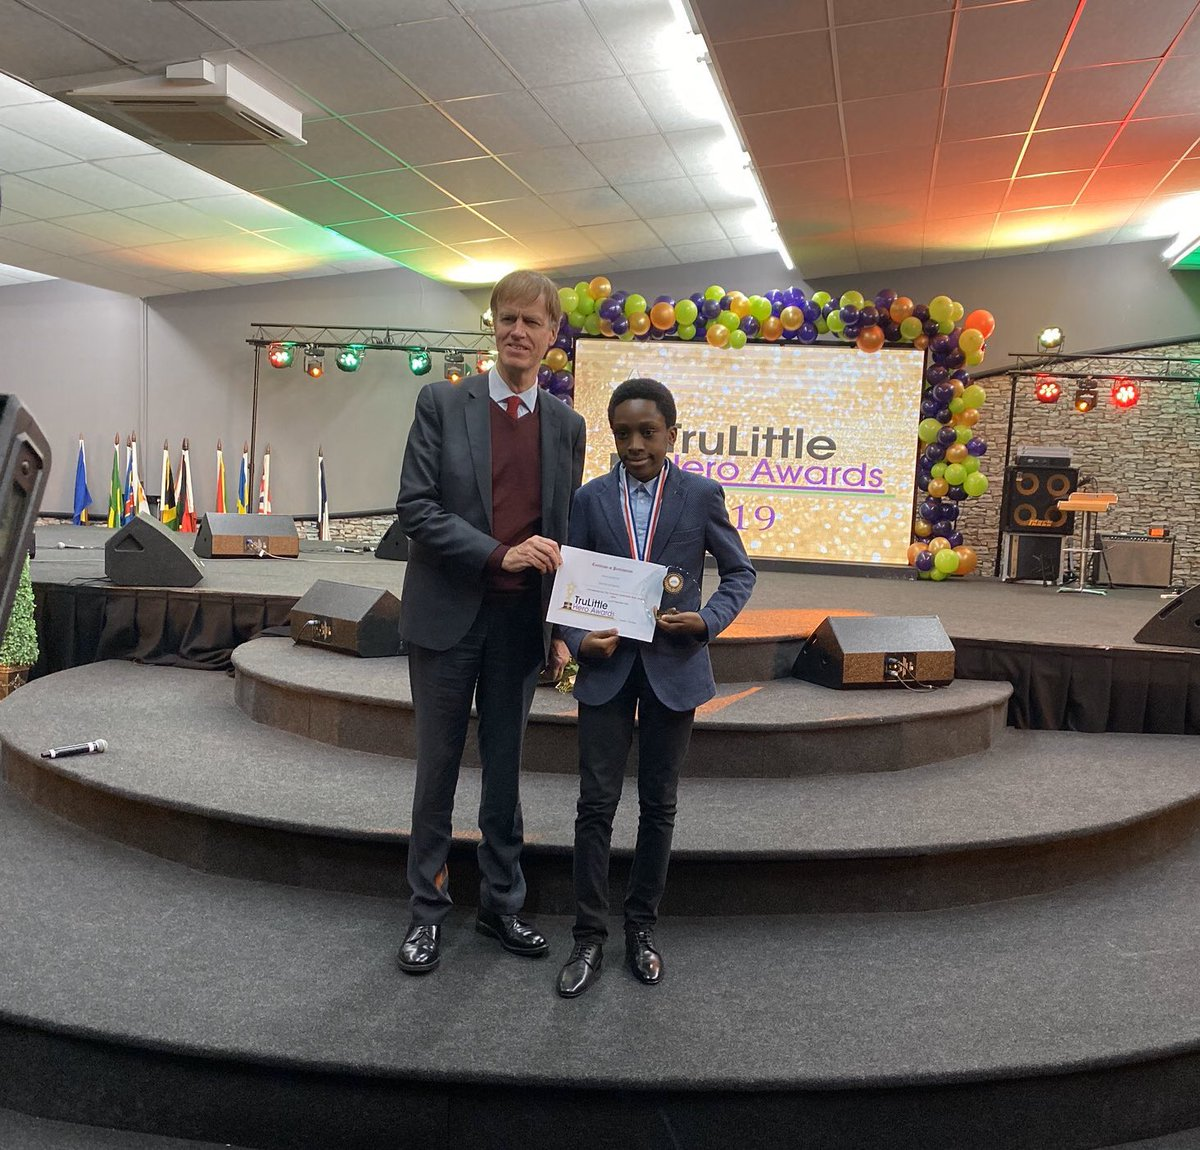 12-year-old Nigerian boy based in the UK, Chika Ofili, has been presented with a Special Recognition Award for making a new discovery in Mathematics. The little Mathematician just discovered a new formula for divisibility by 7 in Maths.